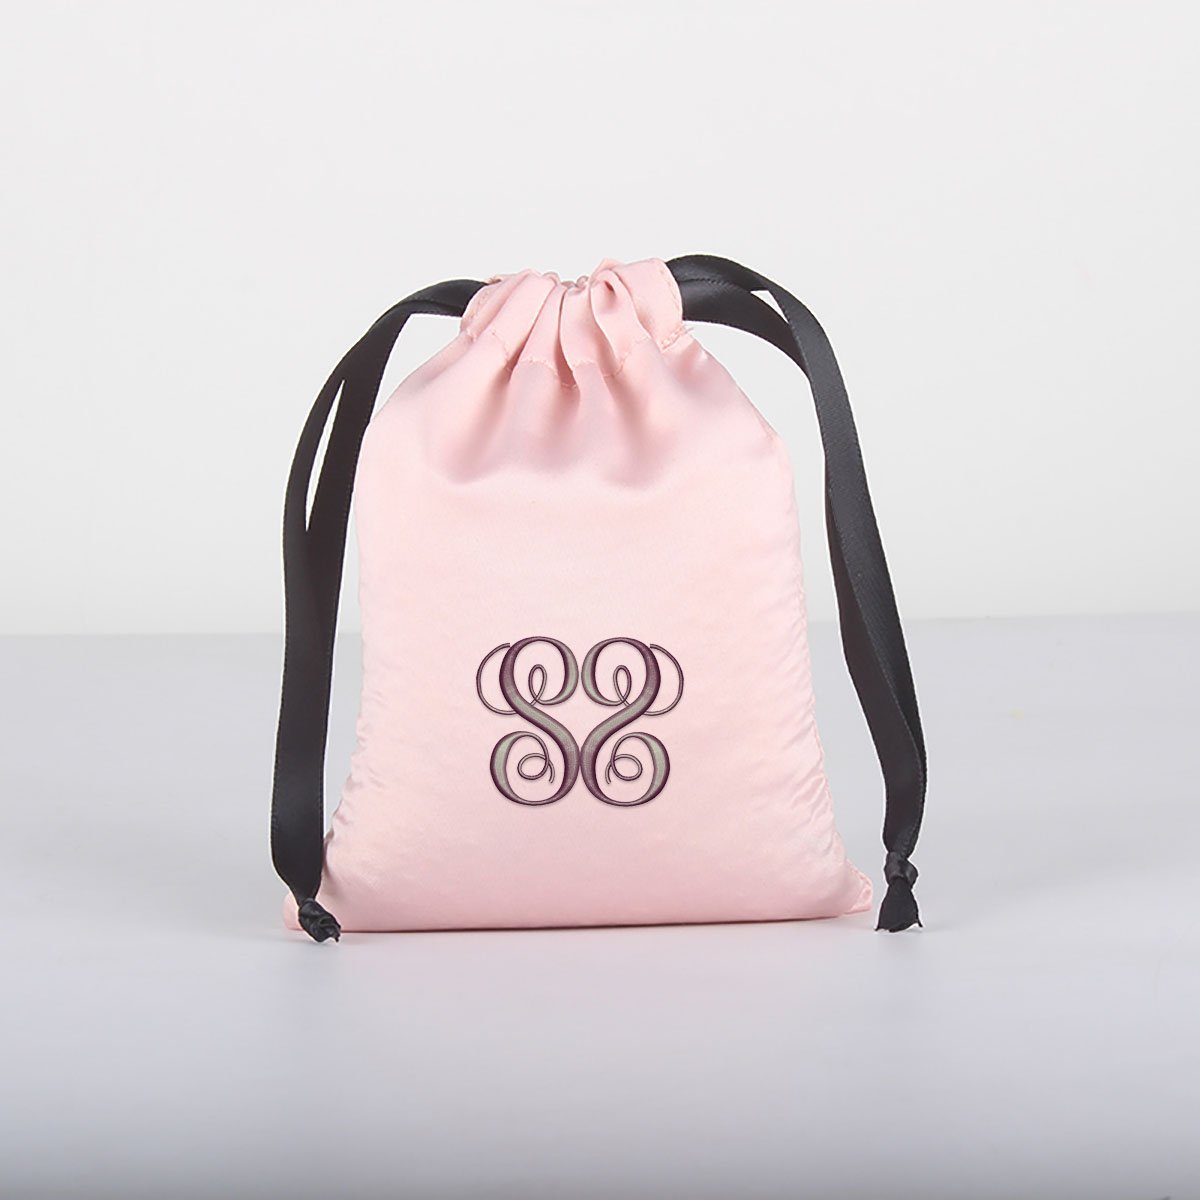 embroidered satin drawstring bags